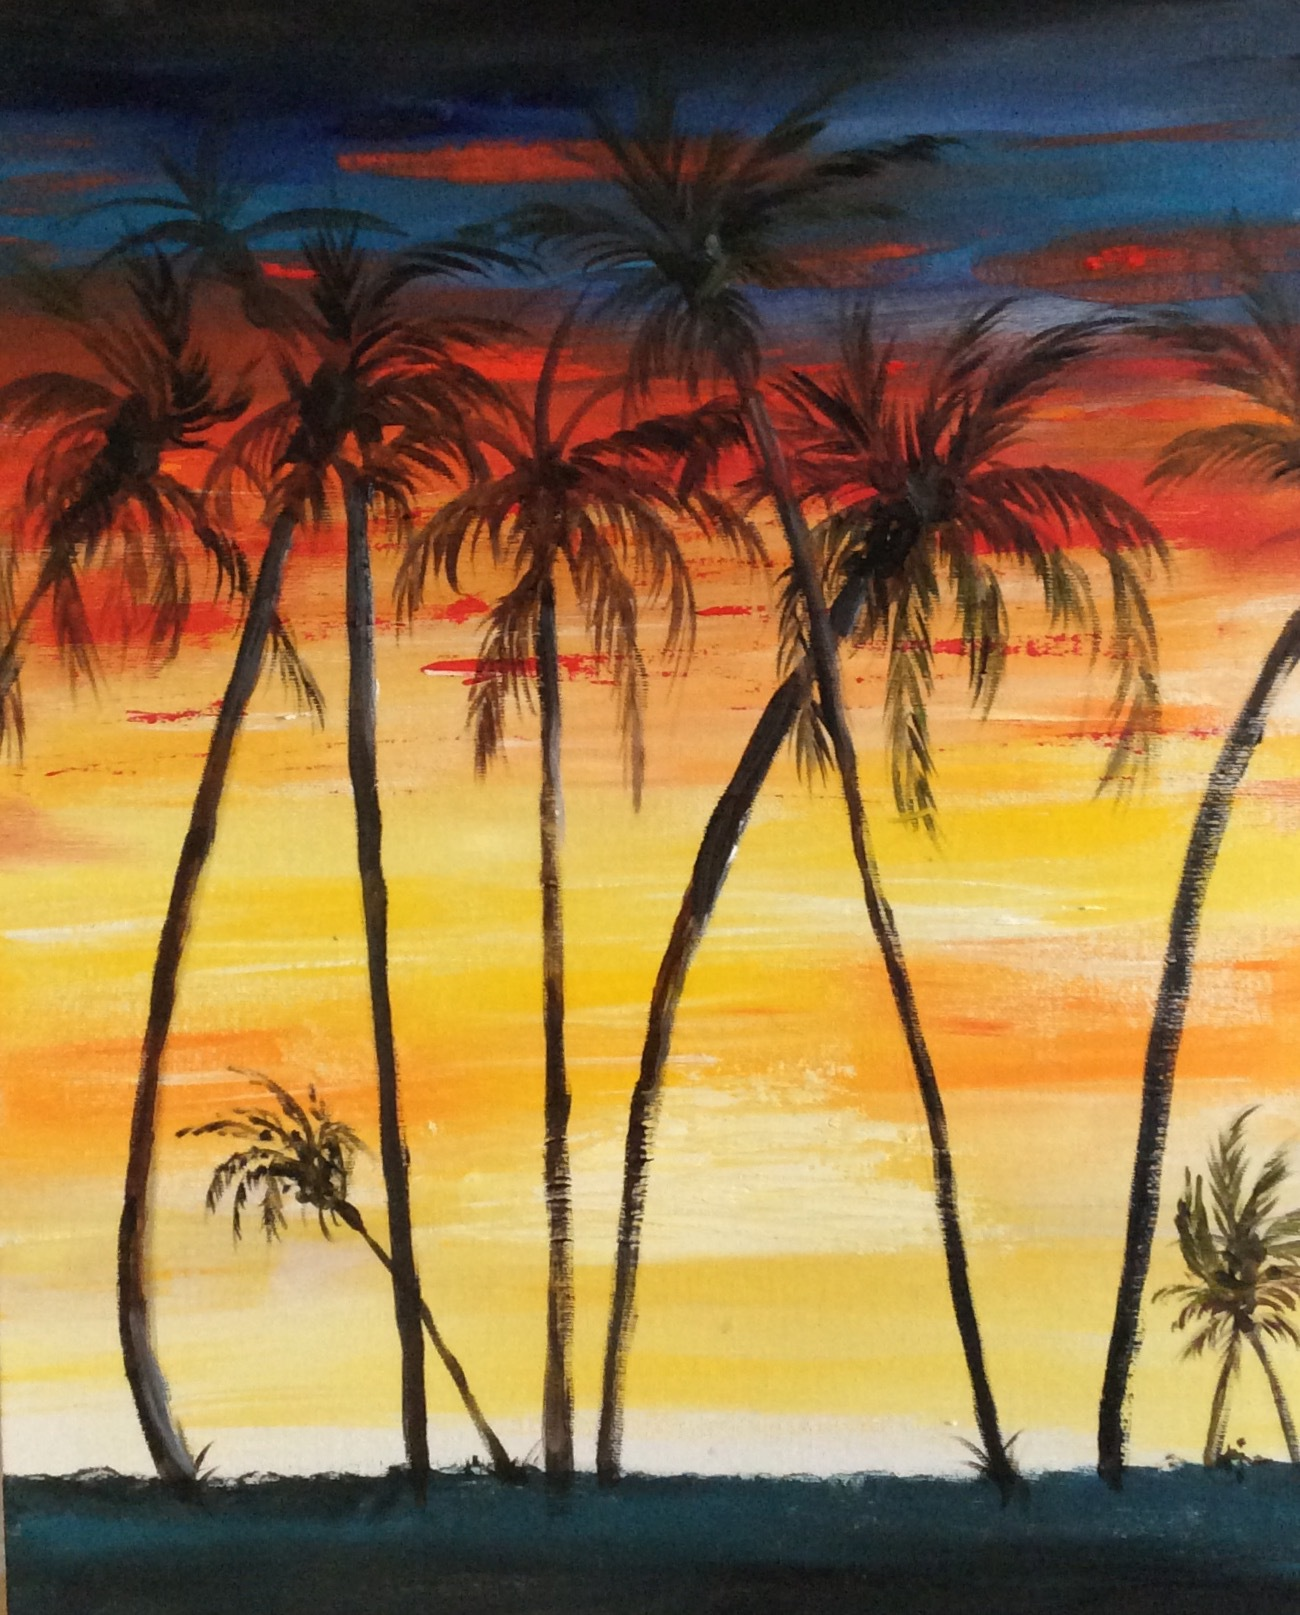 Palms against the Setting Sun